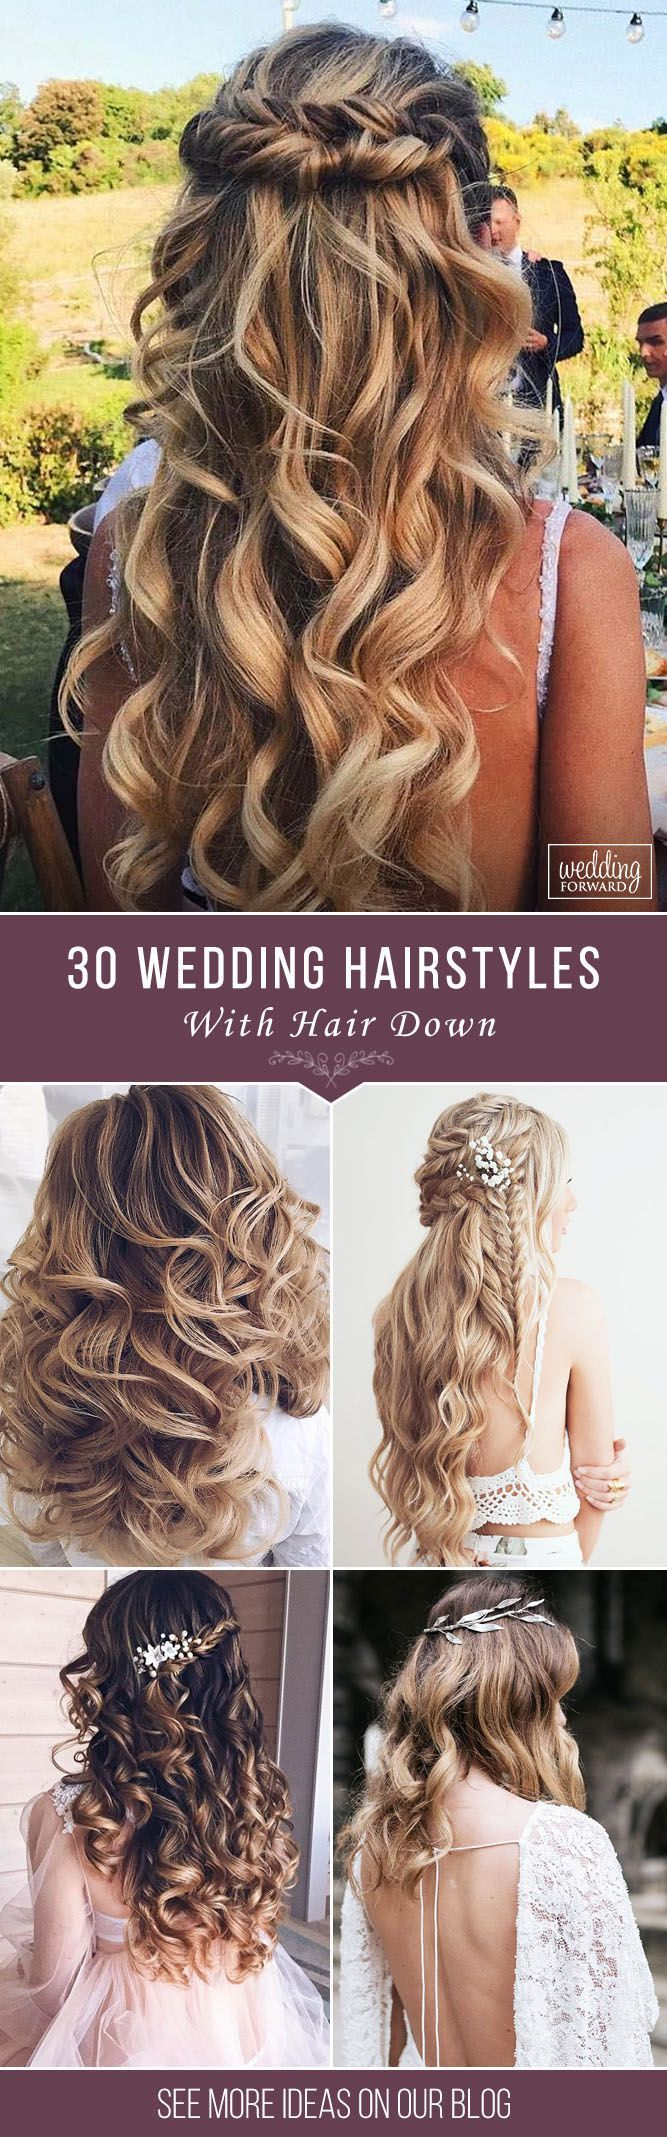 30 Exquisite Wedding Hairstyles With Hair Down ❤️ Wedding hairstyles with hair down are perfect for spring or summer celebration. Have inspired with our wedding hairstyle ideas for hair down. See more: http://www.weddingforward.com/wedding-hairstyles-down/ ‎#wedding #bride #weddinghairstyles